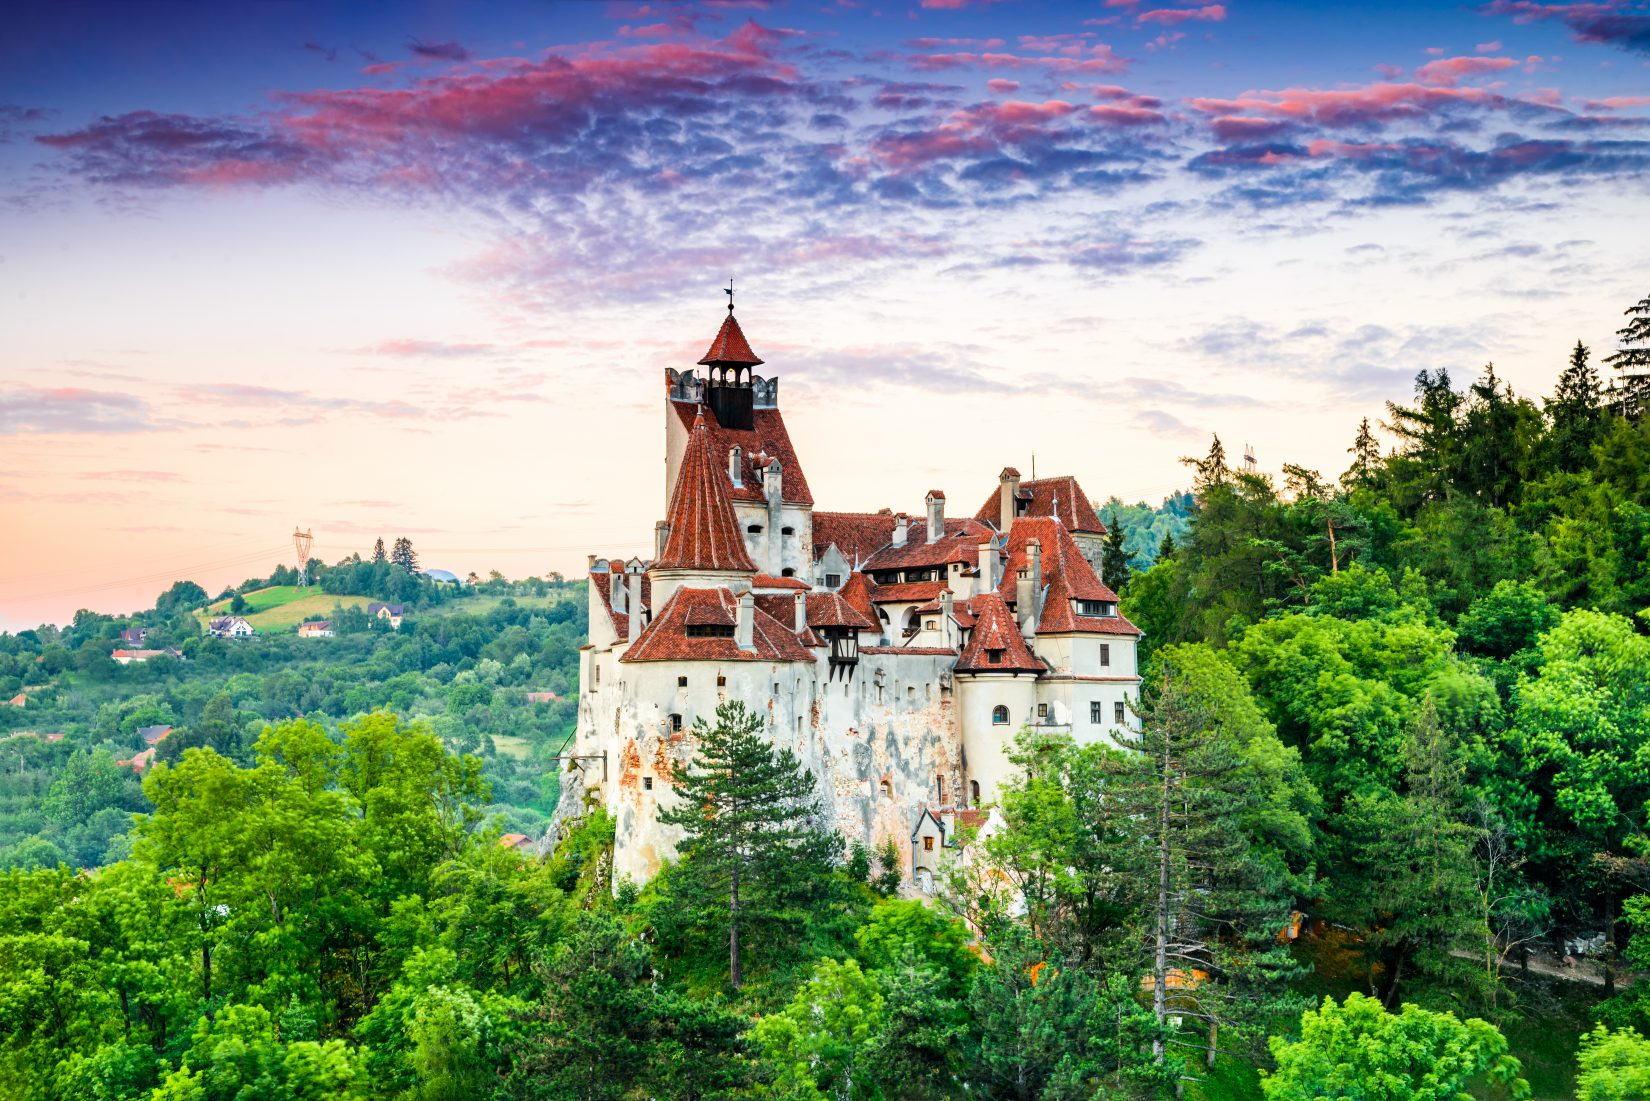 Bran Castle, Romania. Stunning HDR twilight image of Dracula fortress in Transylvania, medieval landmark.